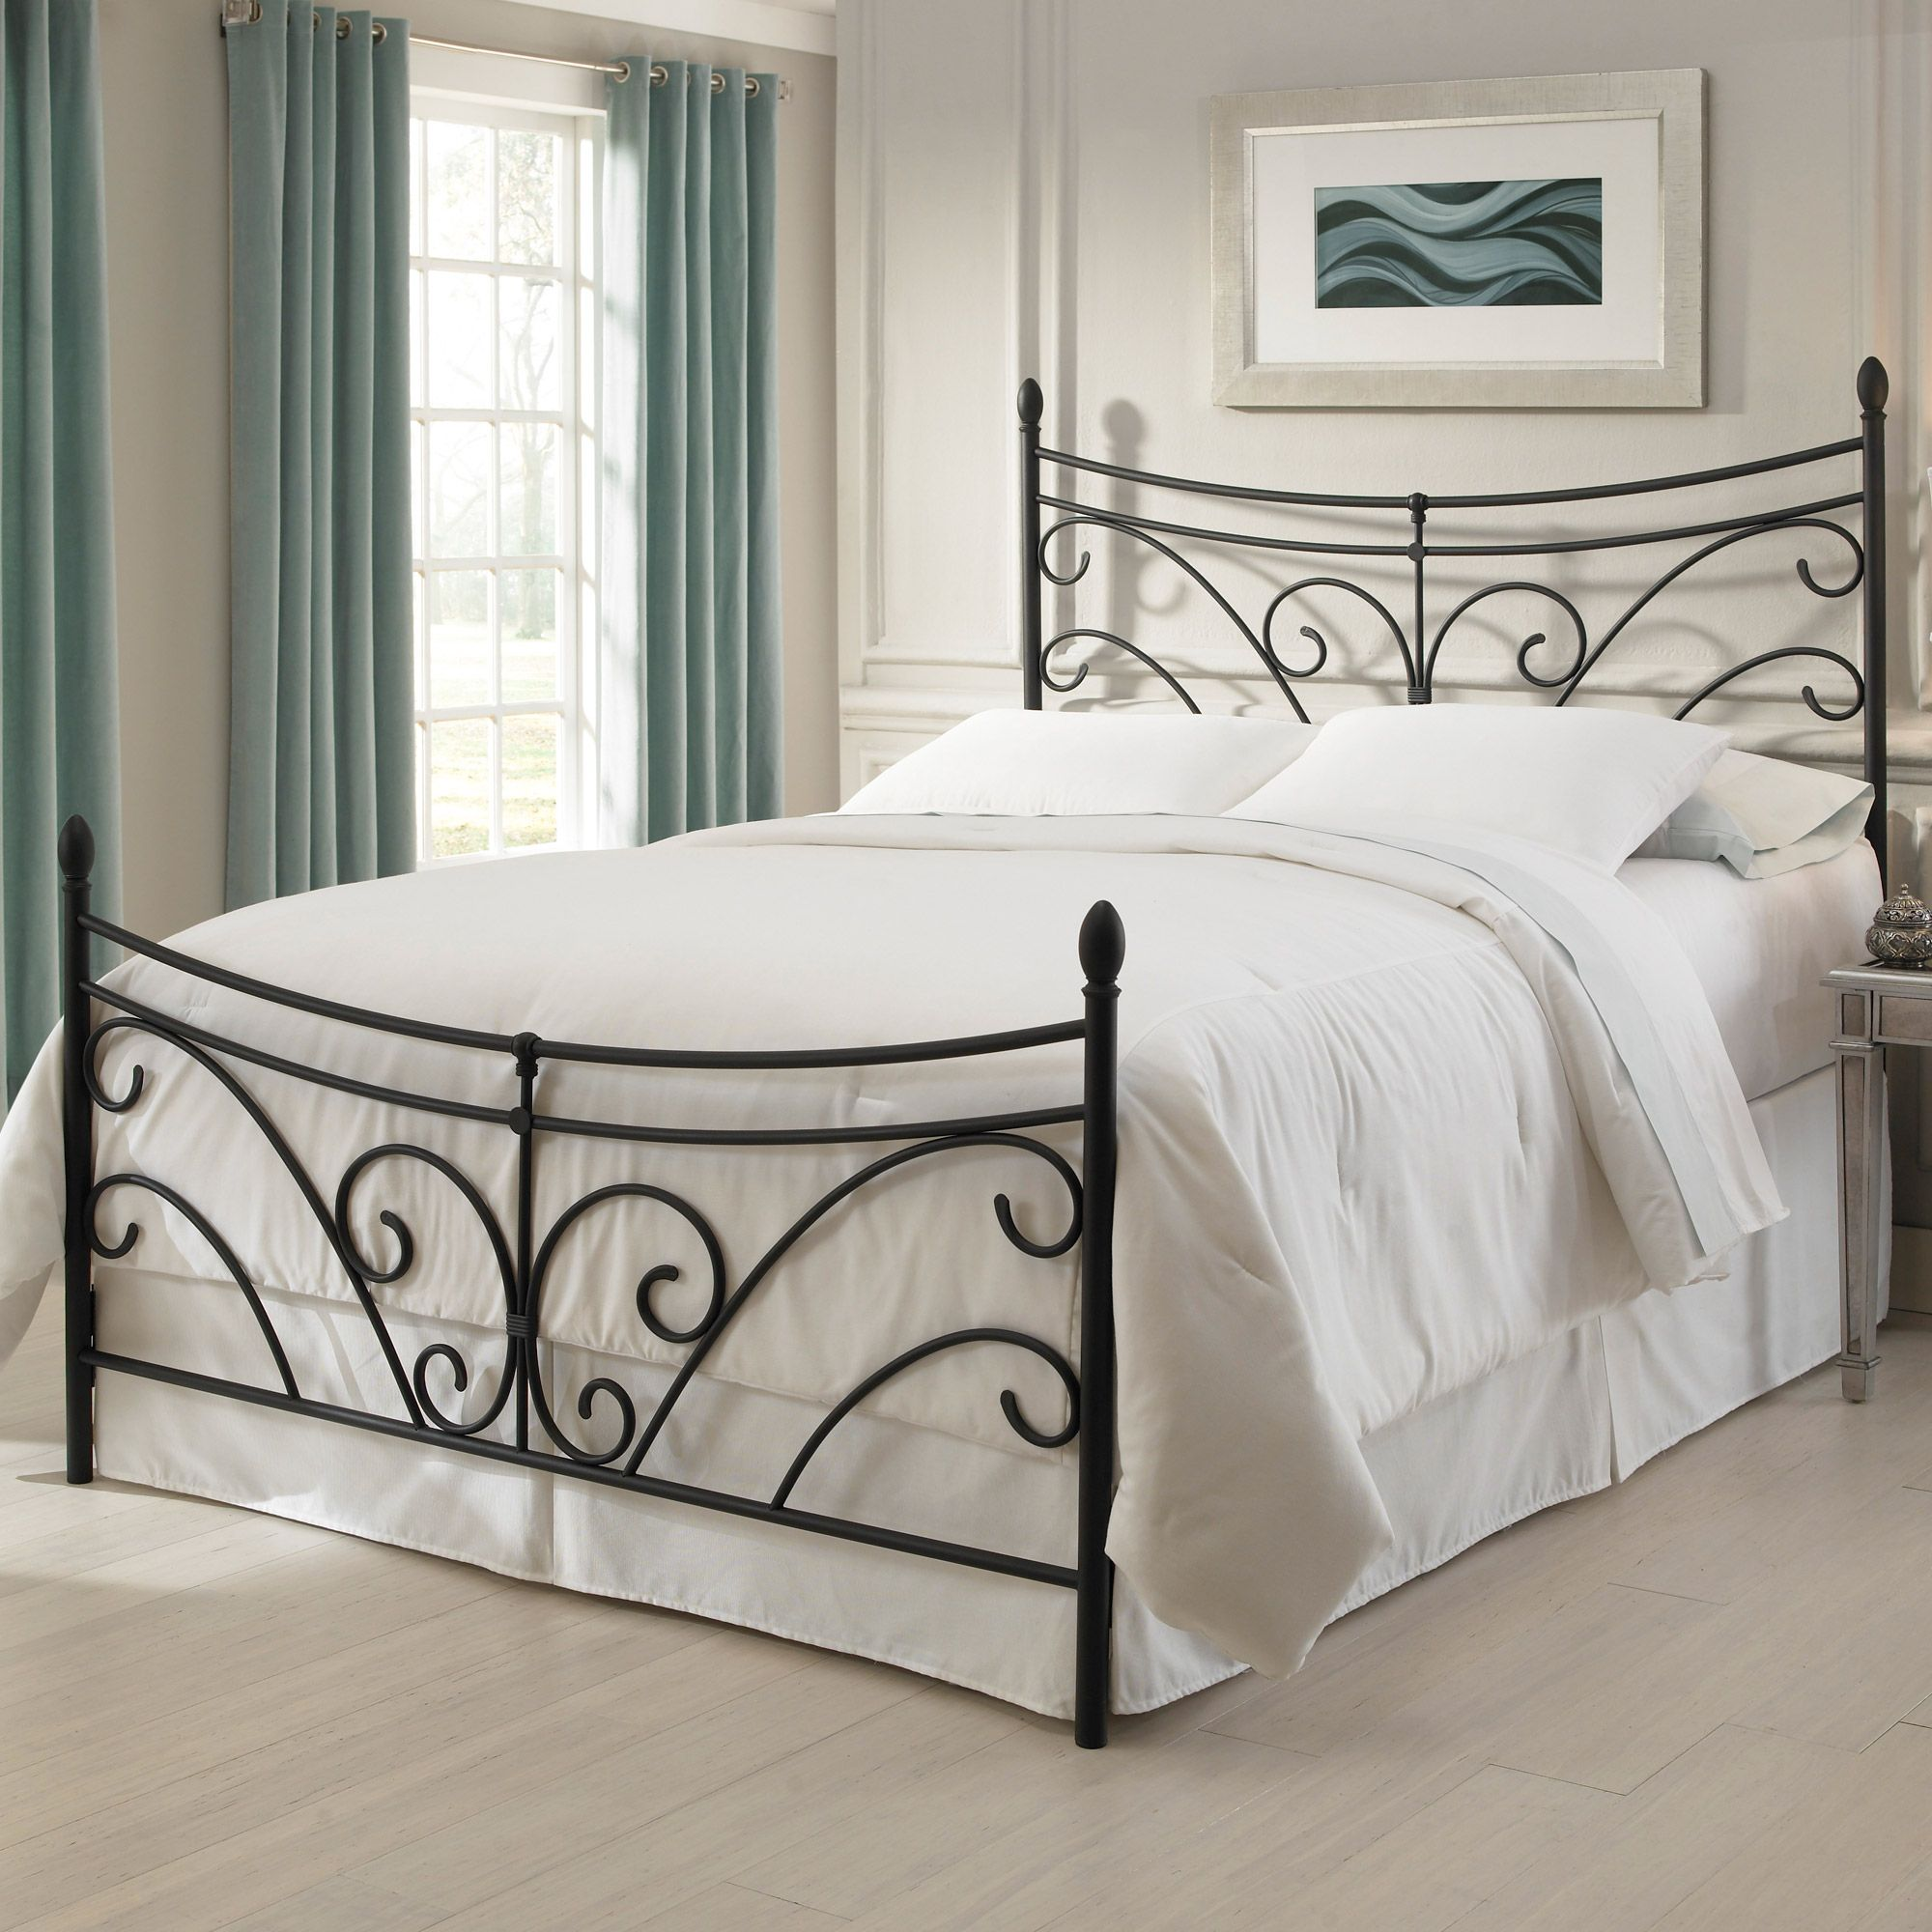 Overawe Wrought Iron Headboard With White Bedding | Headboards ...